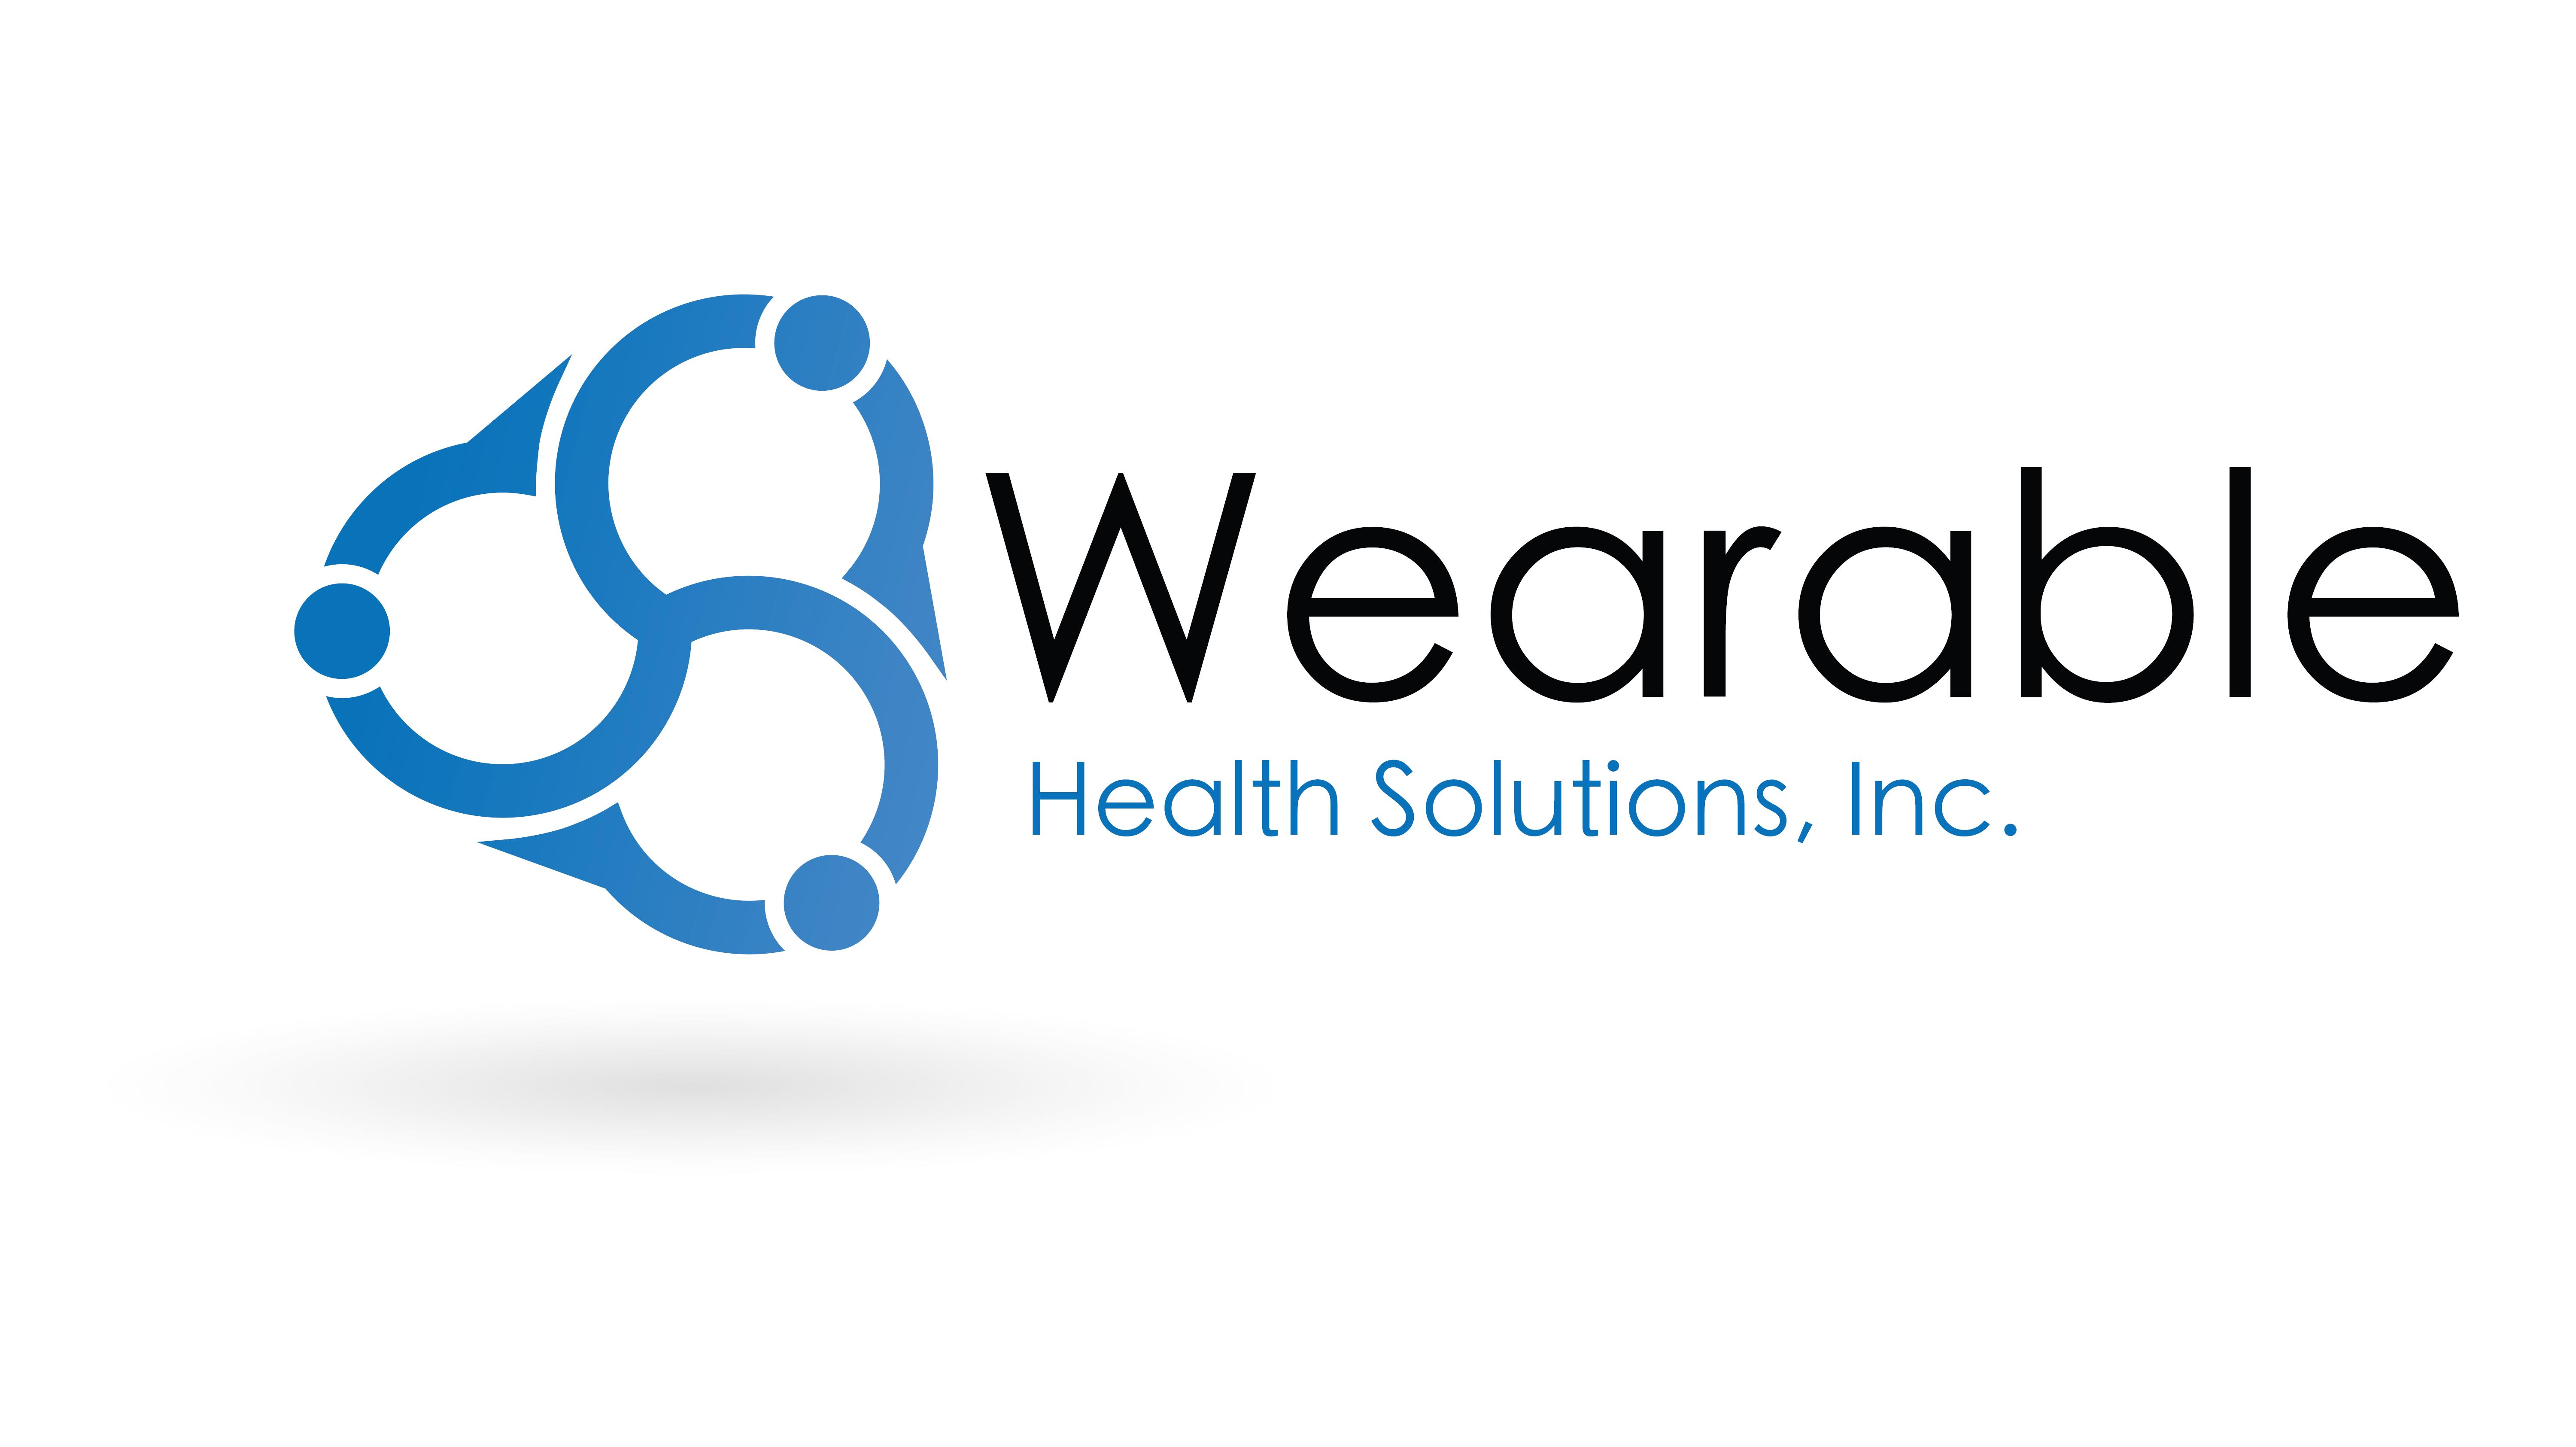 """Wearable Health Solutions Inc. Teams With """"Worldwide Business With kathy ireland(R)"""" To Create Marketing Campaign Designed To Drive Leads To Its International Dealer Network In The Wearable Healthcare Devices Market"""